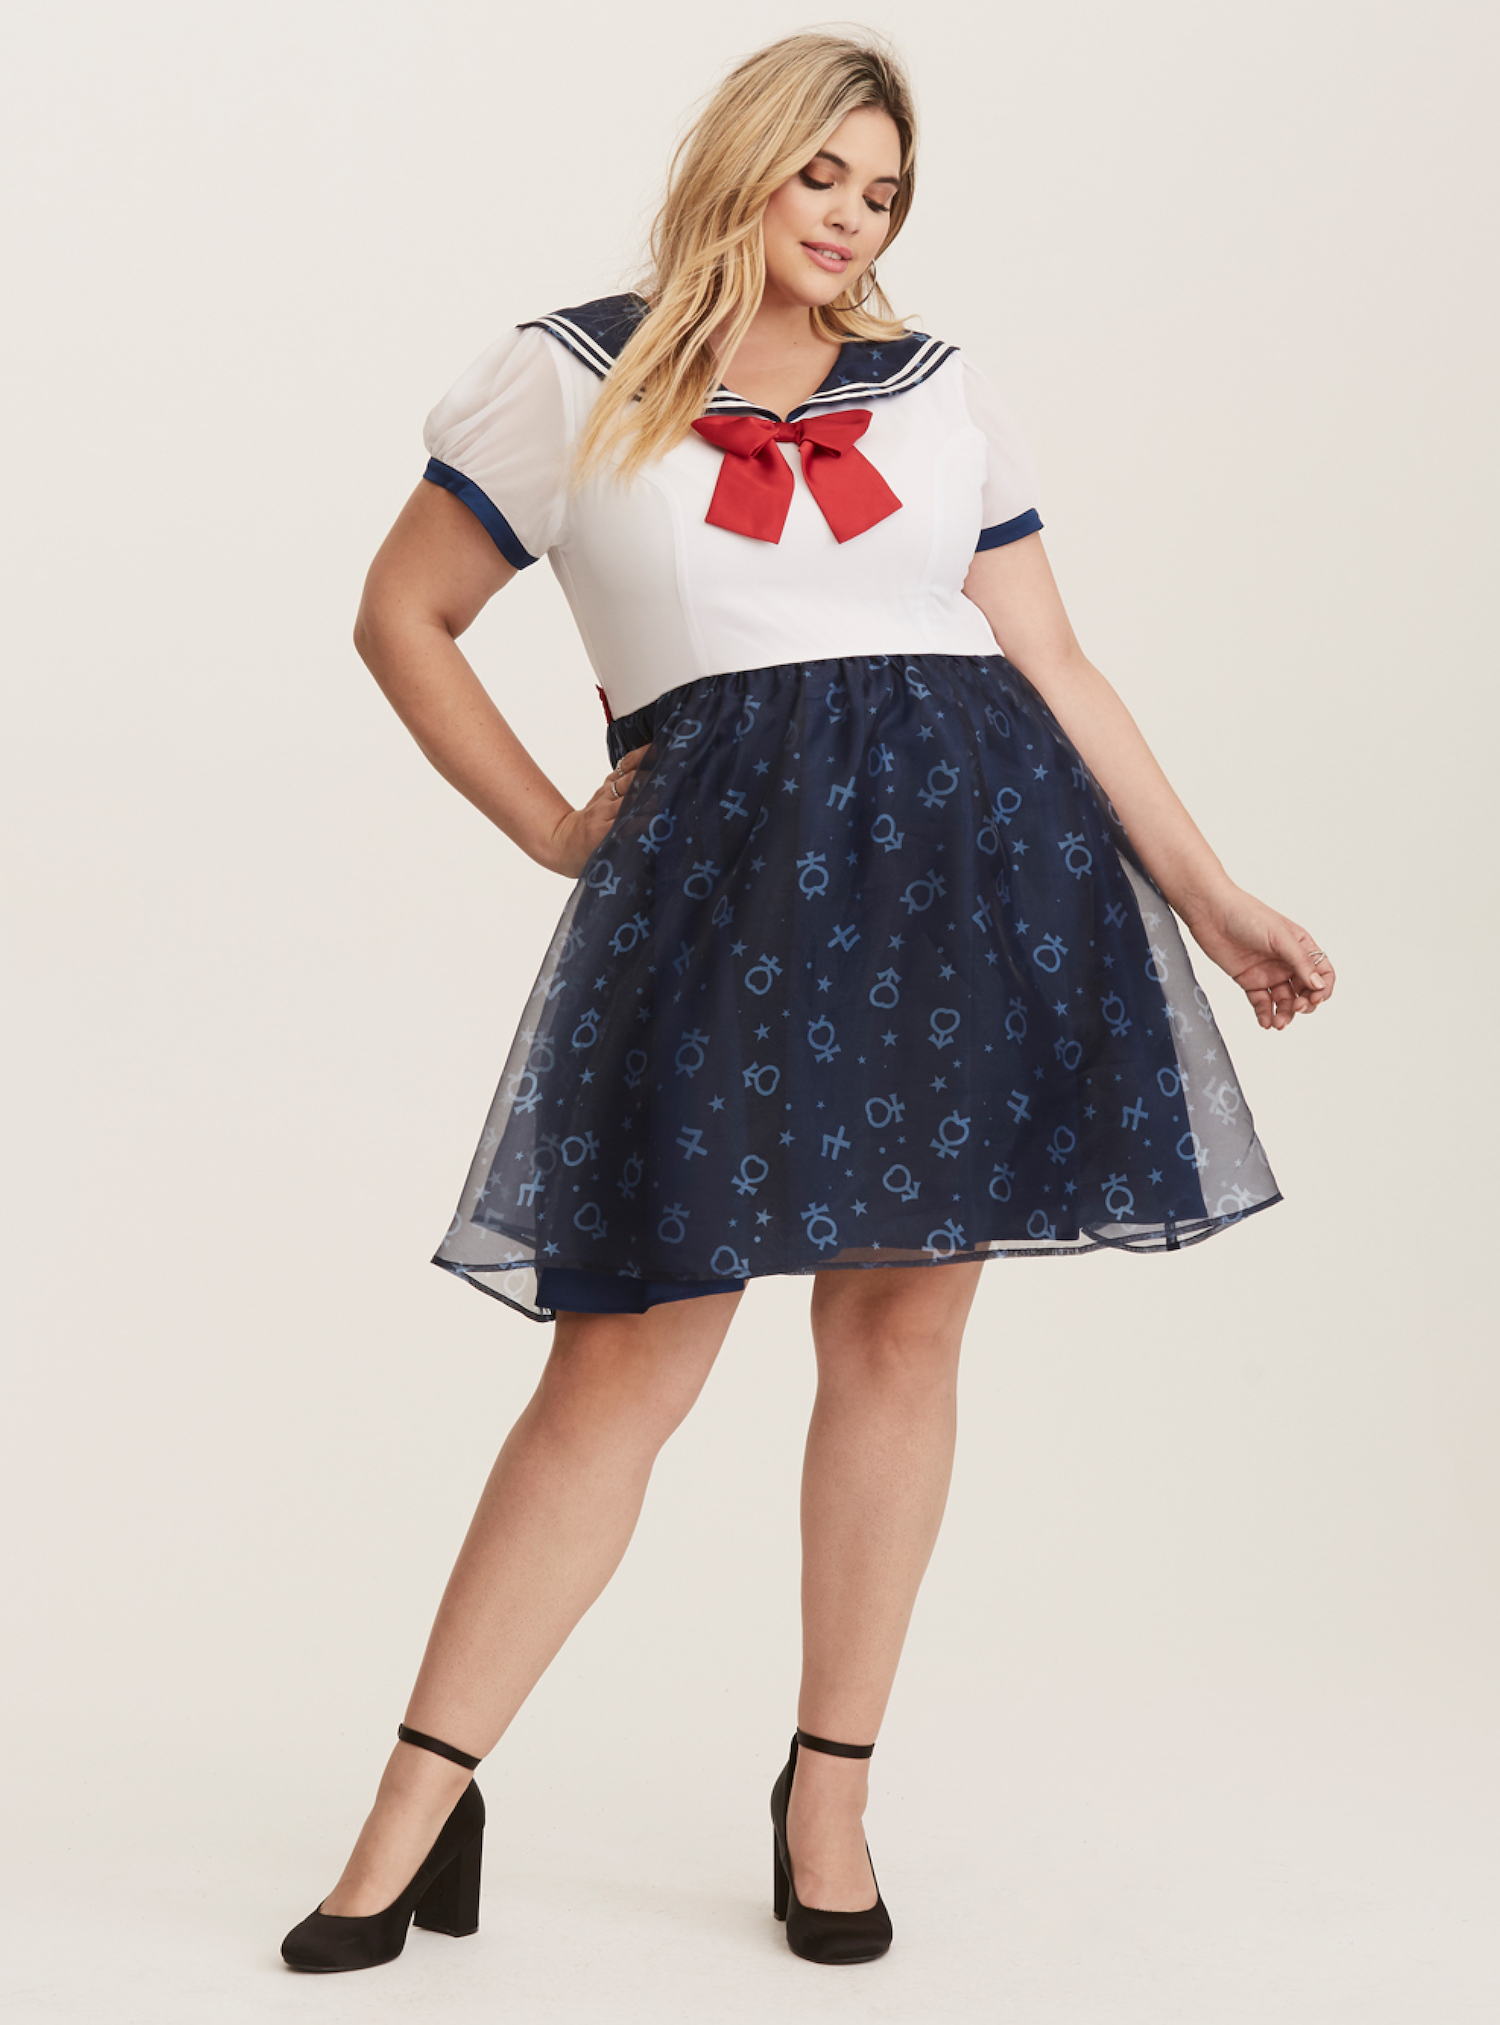 Skater dress. Photo credit: Torrid